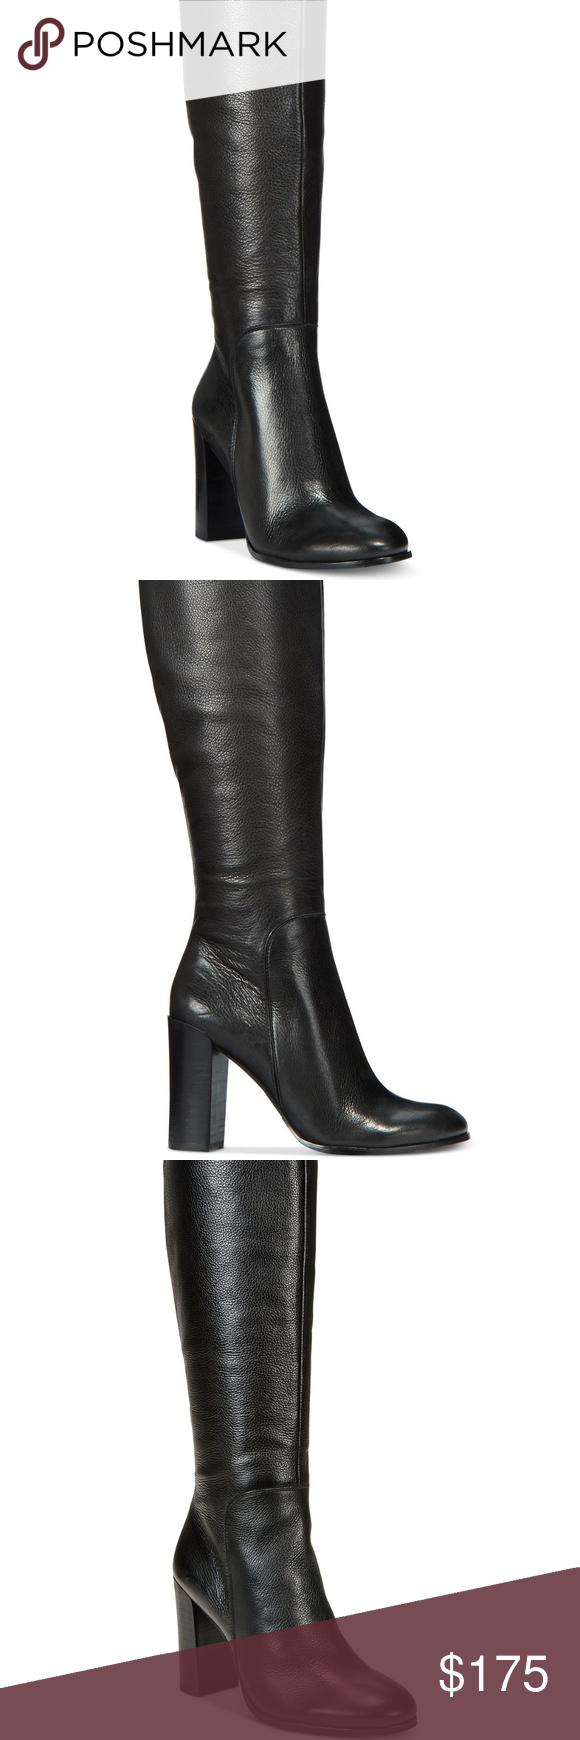 6cc4e69a17c8b Kenneth Cole New York Women's Justin Block-Heel Sophistication with a flair  for the daring. Kenneth Cole New York's Justin boots mix sleek, polished  leather ...